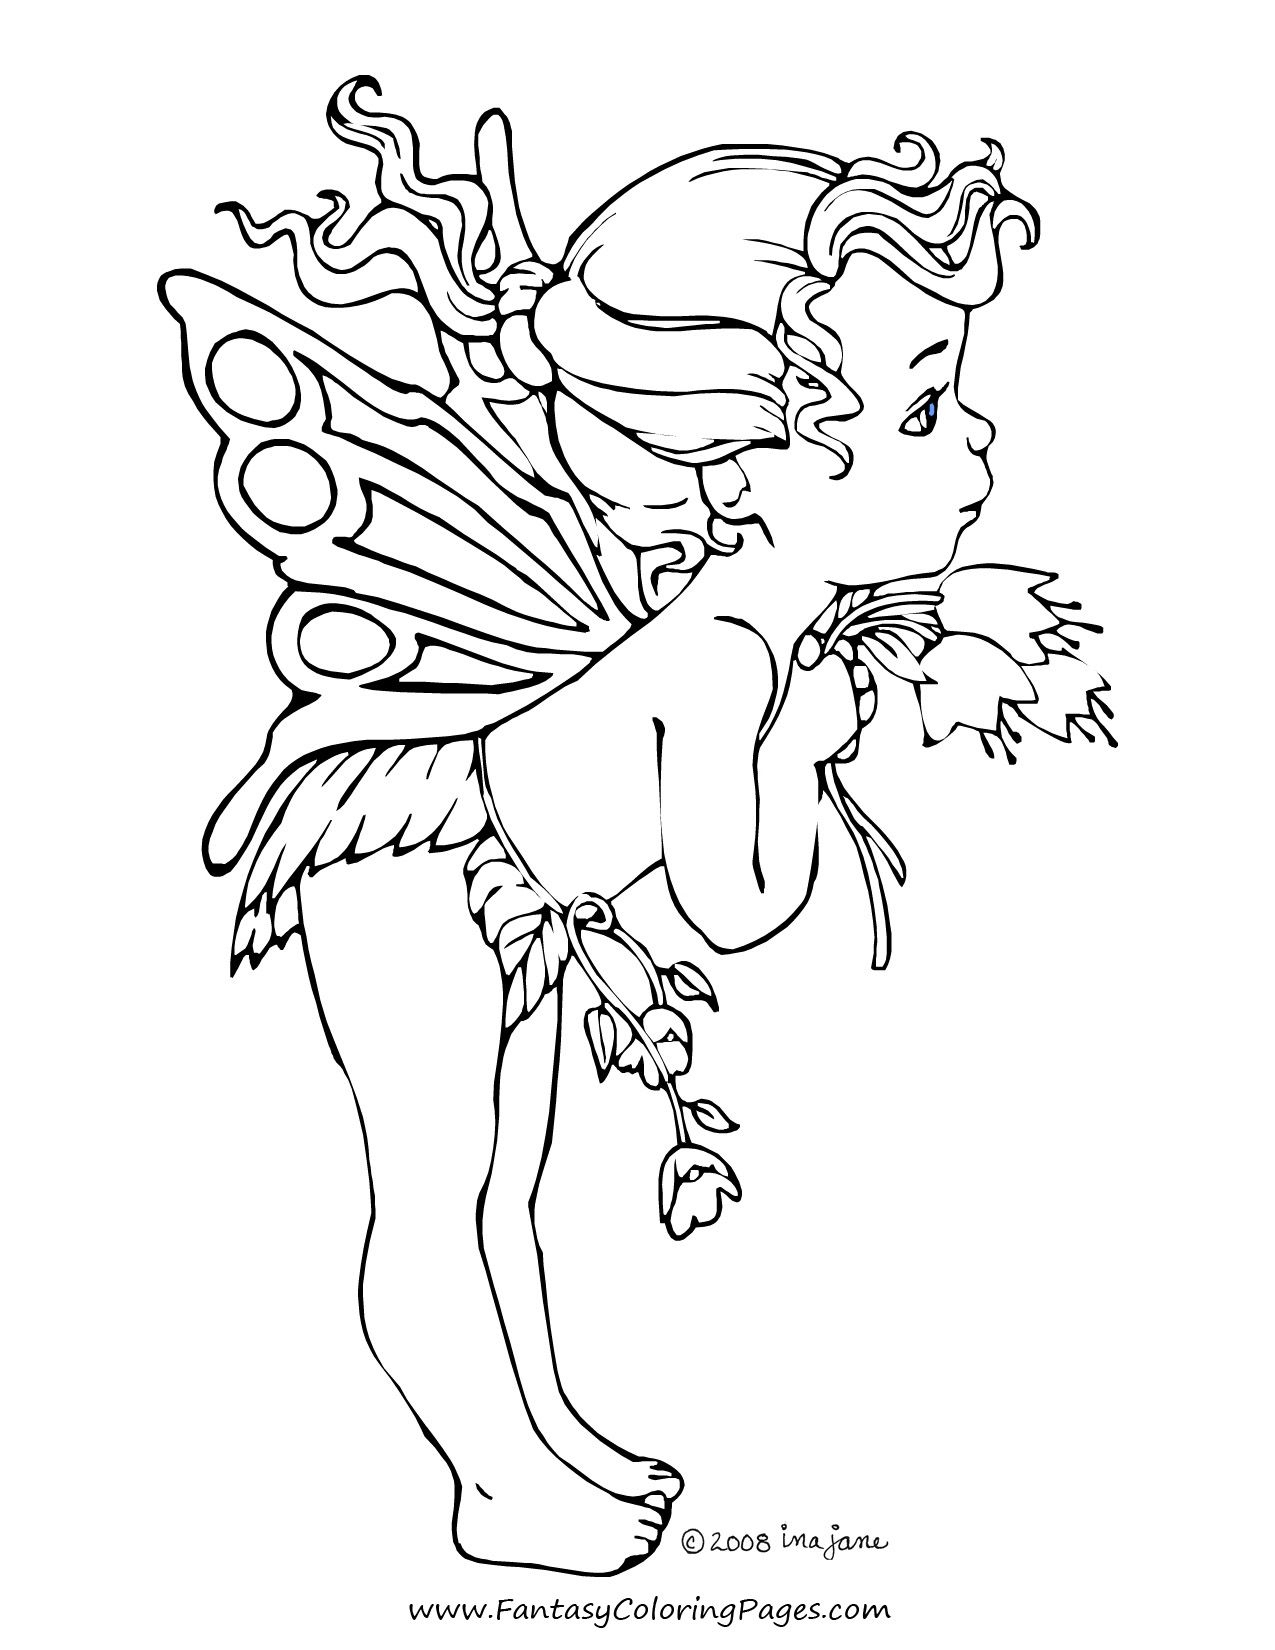 Coloring Pages Fairies Realistic Fairy For Adults Free Books 1275 - Free Printable Coloring Pages Fairies Adults